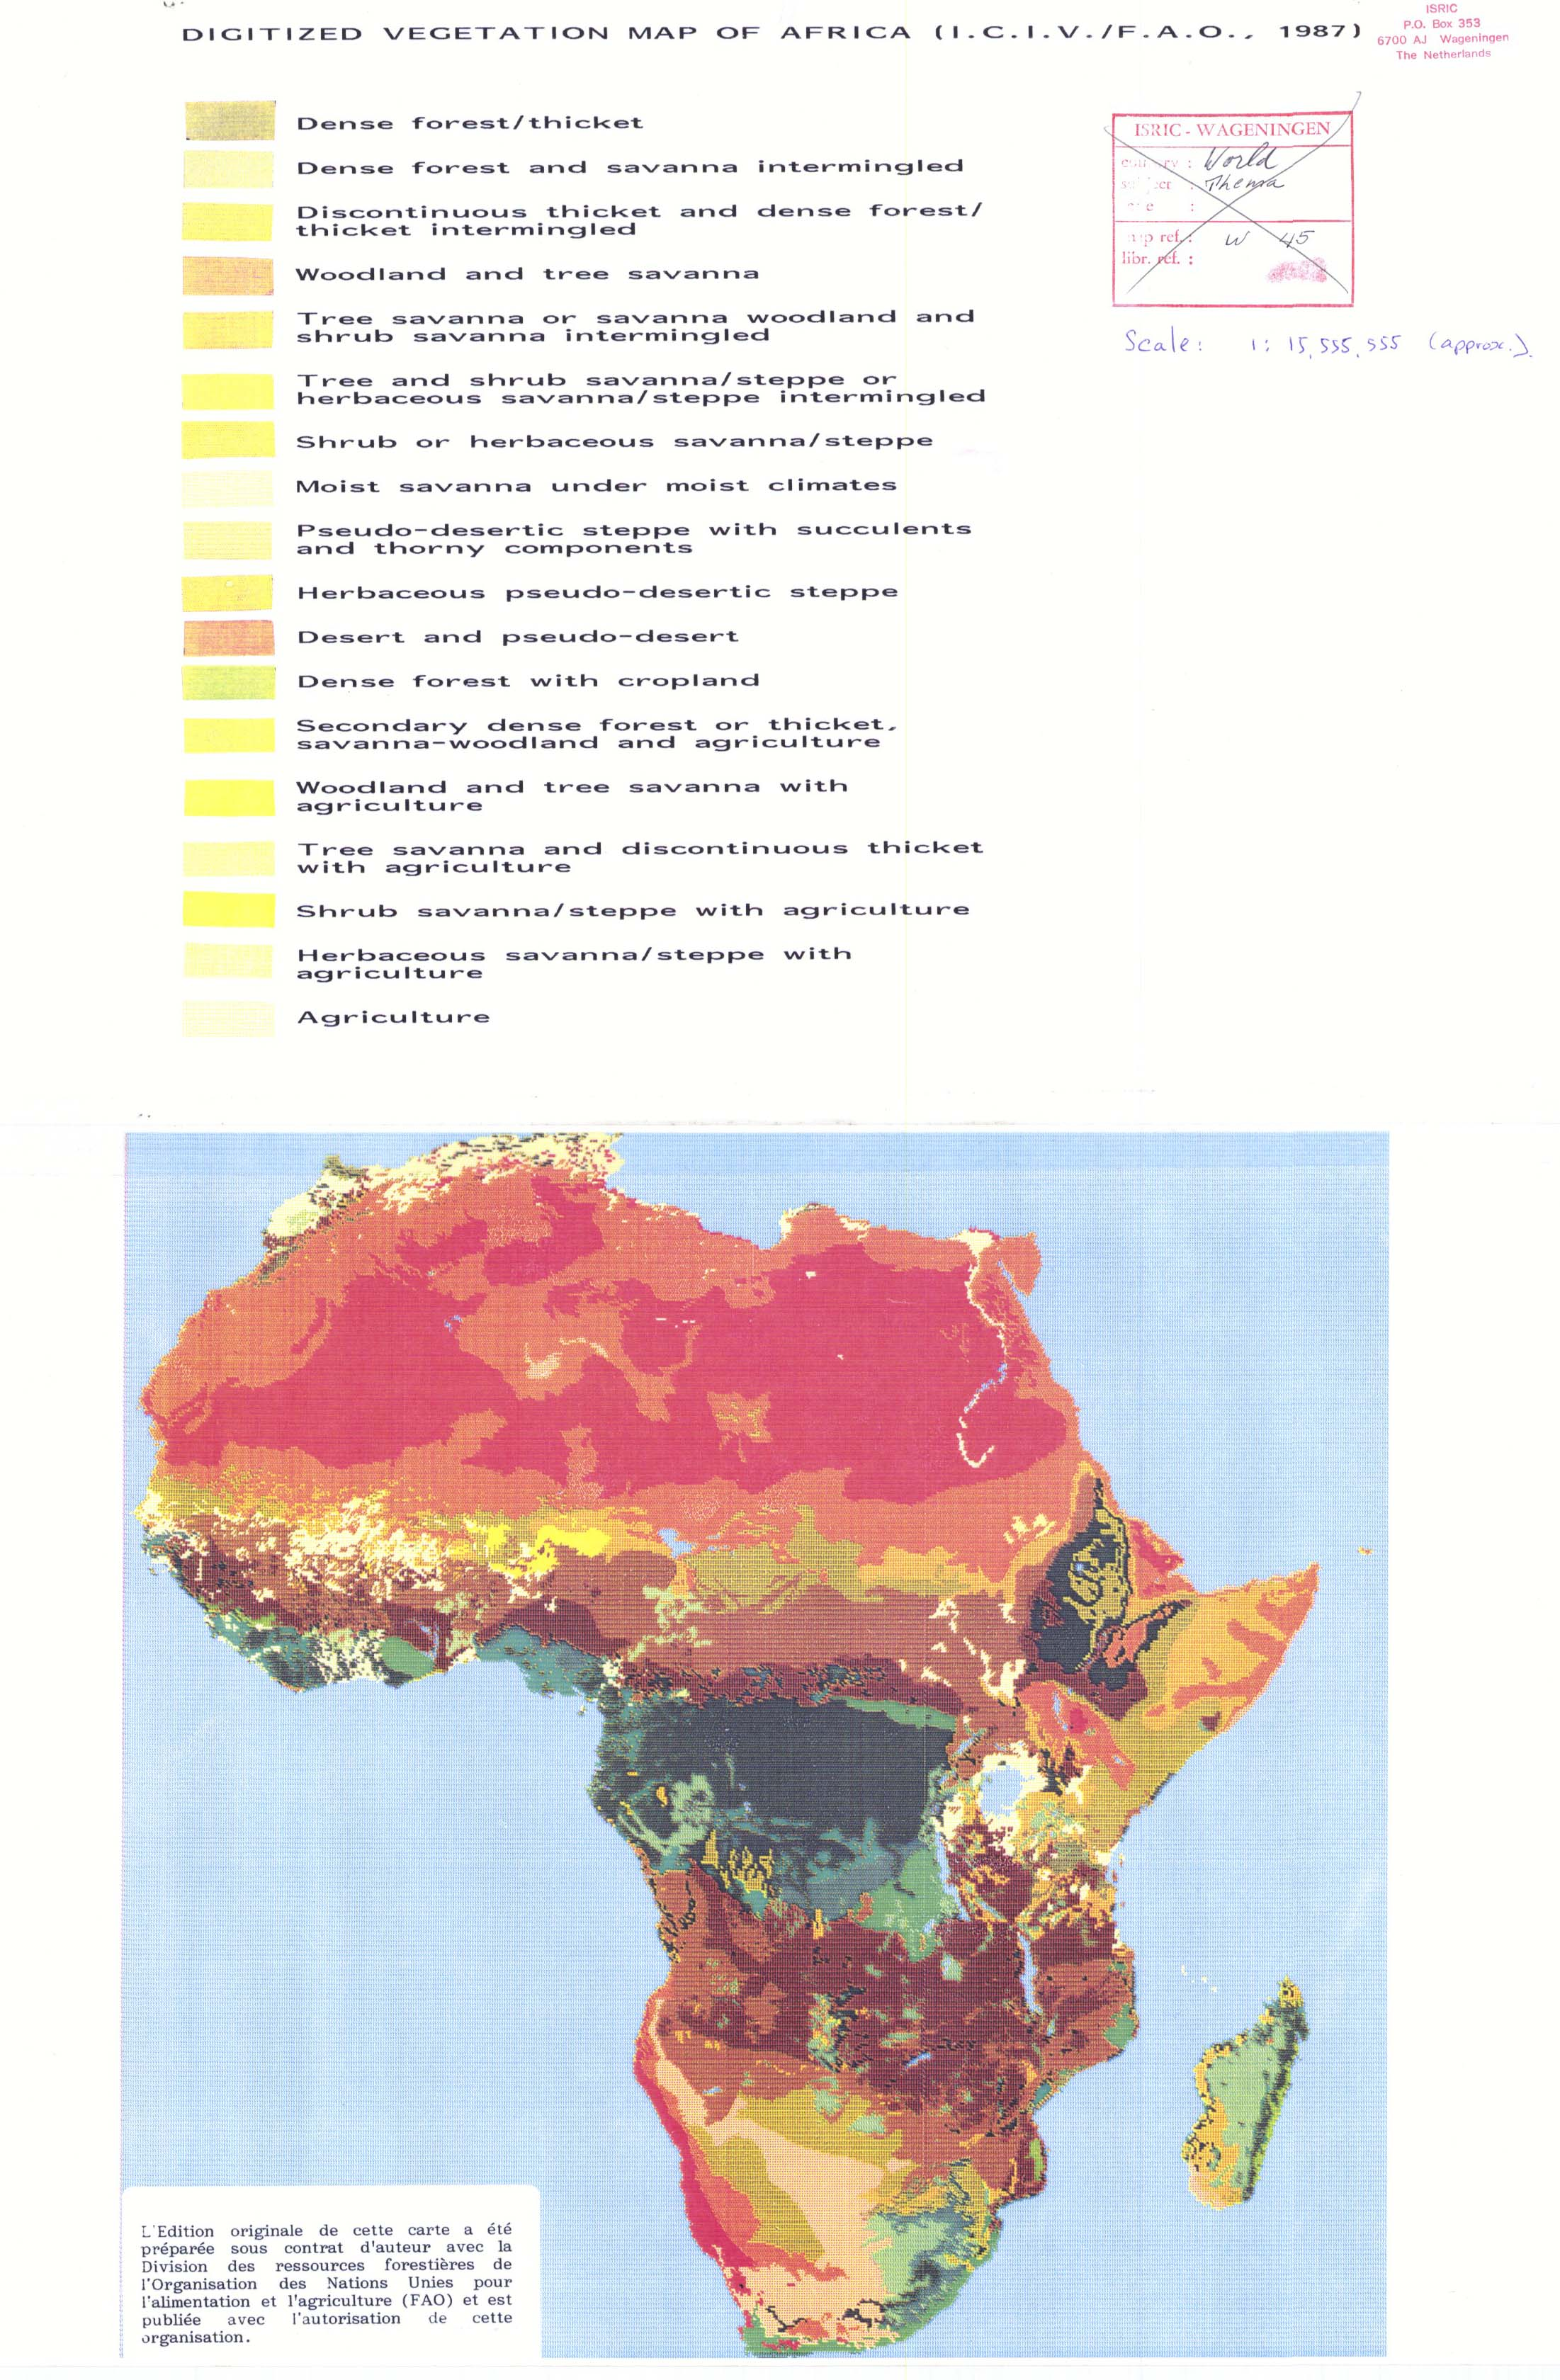 Vegetation Map of Africa 1987